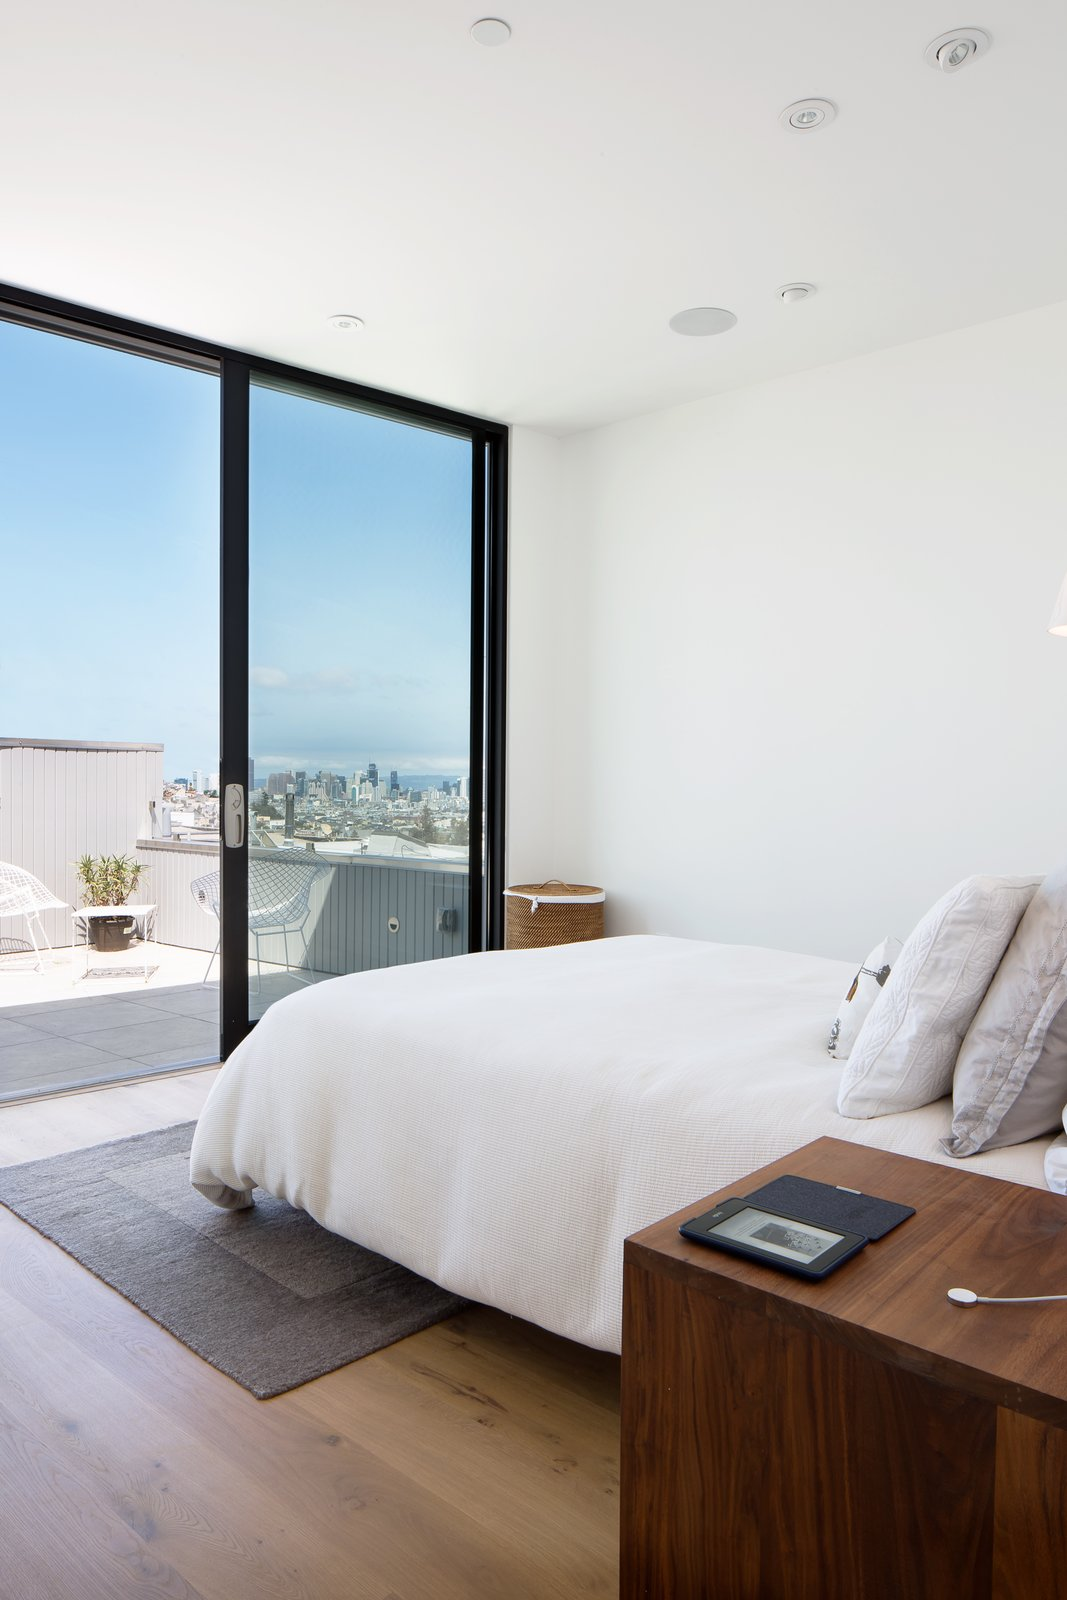 Master bedroom  27th Street - Noe Valley by patrick perez/designpad architecture